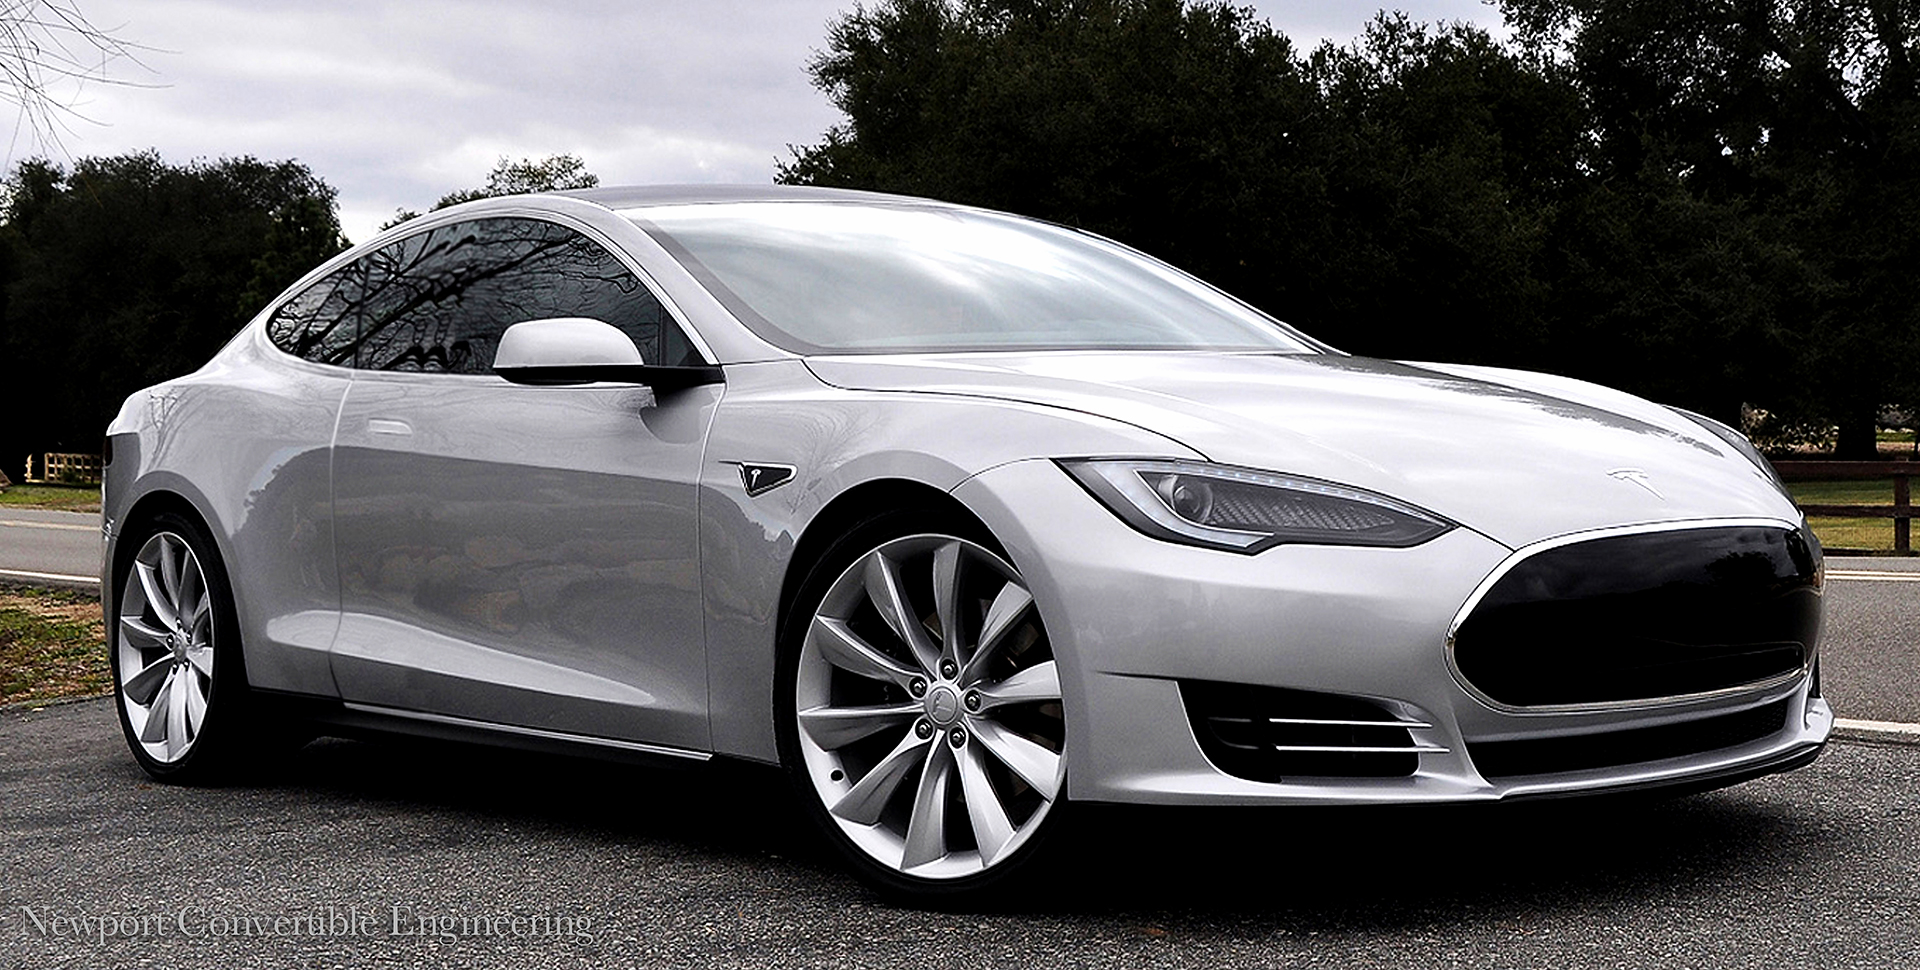 ... off and that it needed reconstruction in some segments. These changes had to be delivered so that the vehicle would offer same structural integrity and ... & Tesla Model S coupe